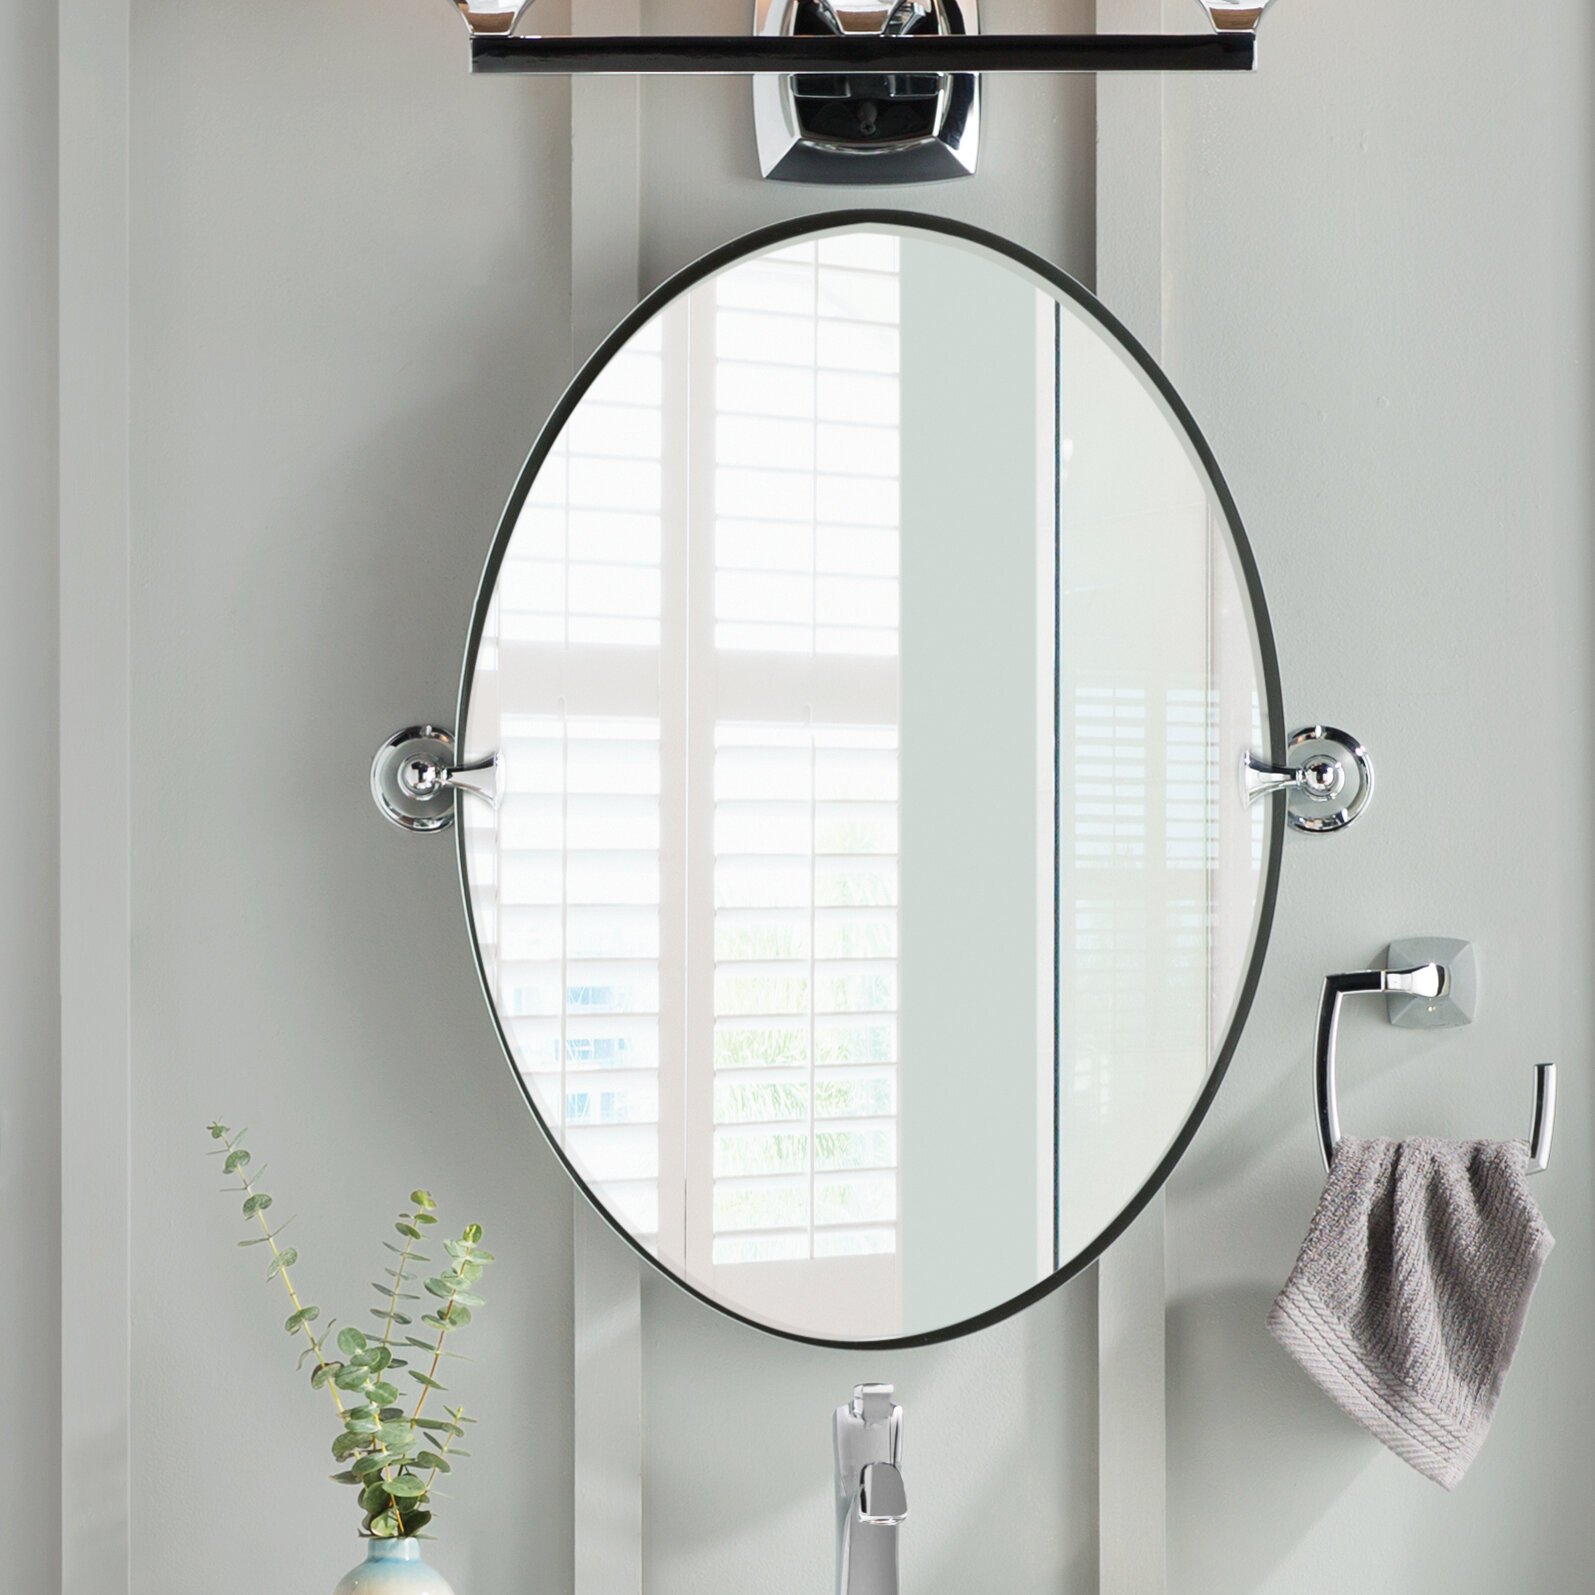 Moen Glenshire Wall Mirror & Reviews | Wayfair